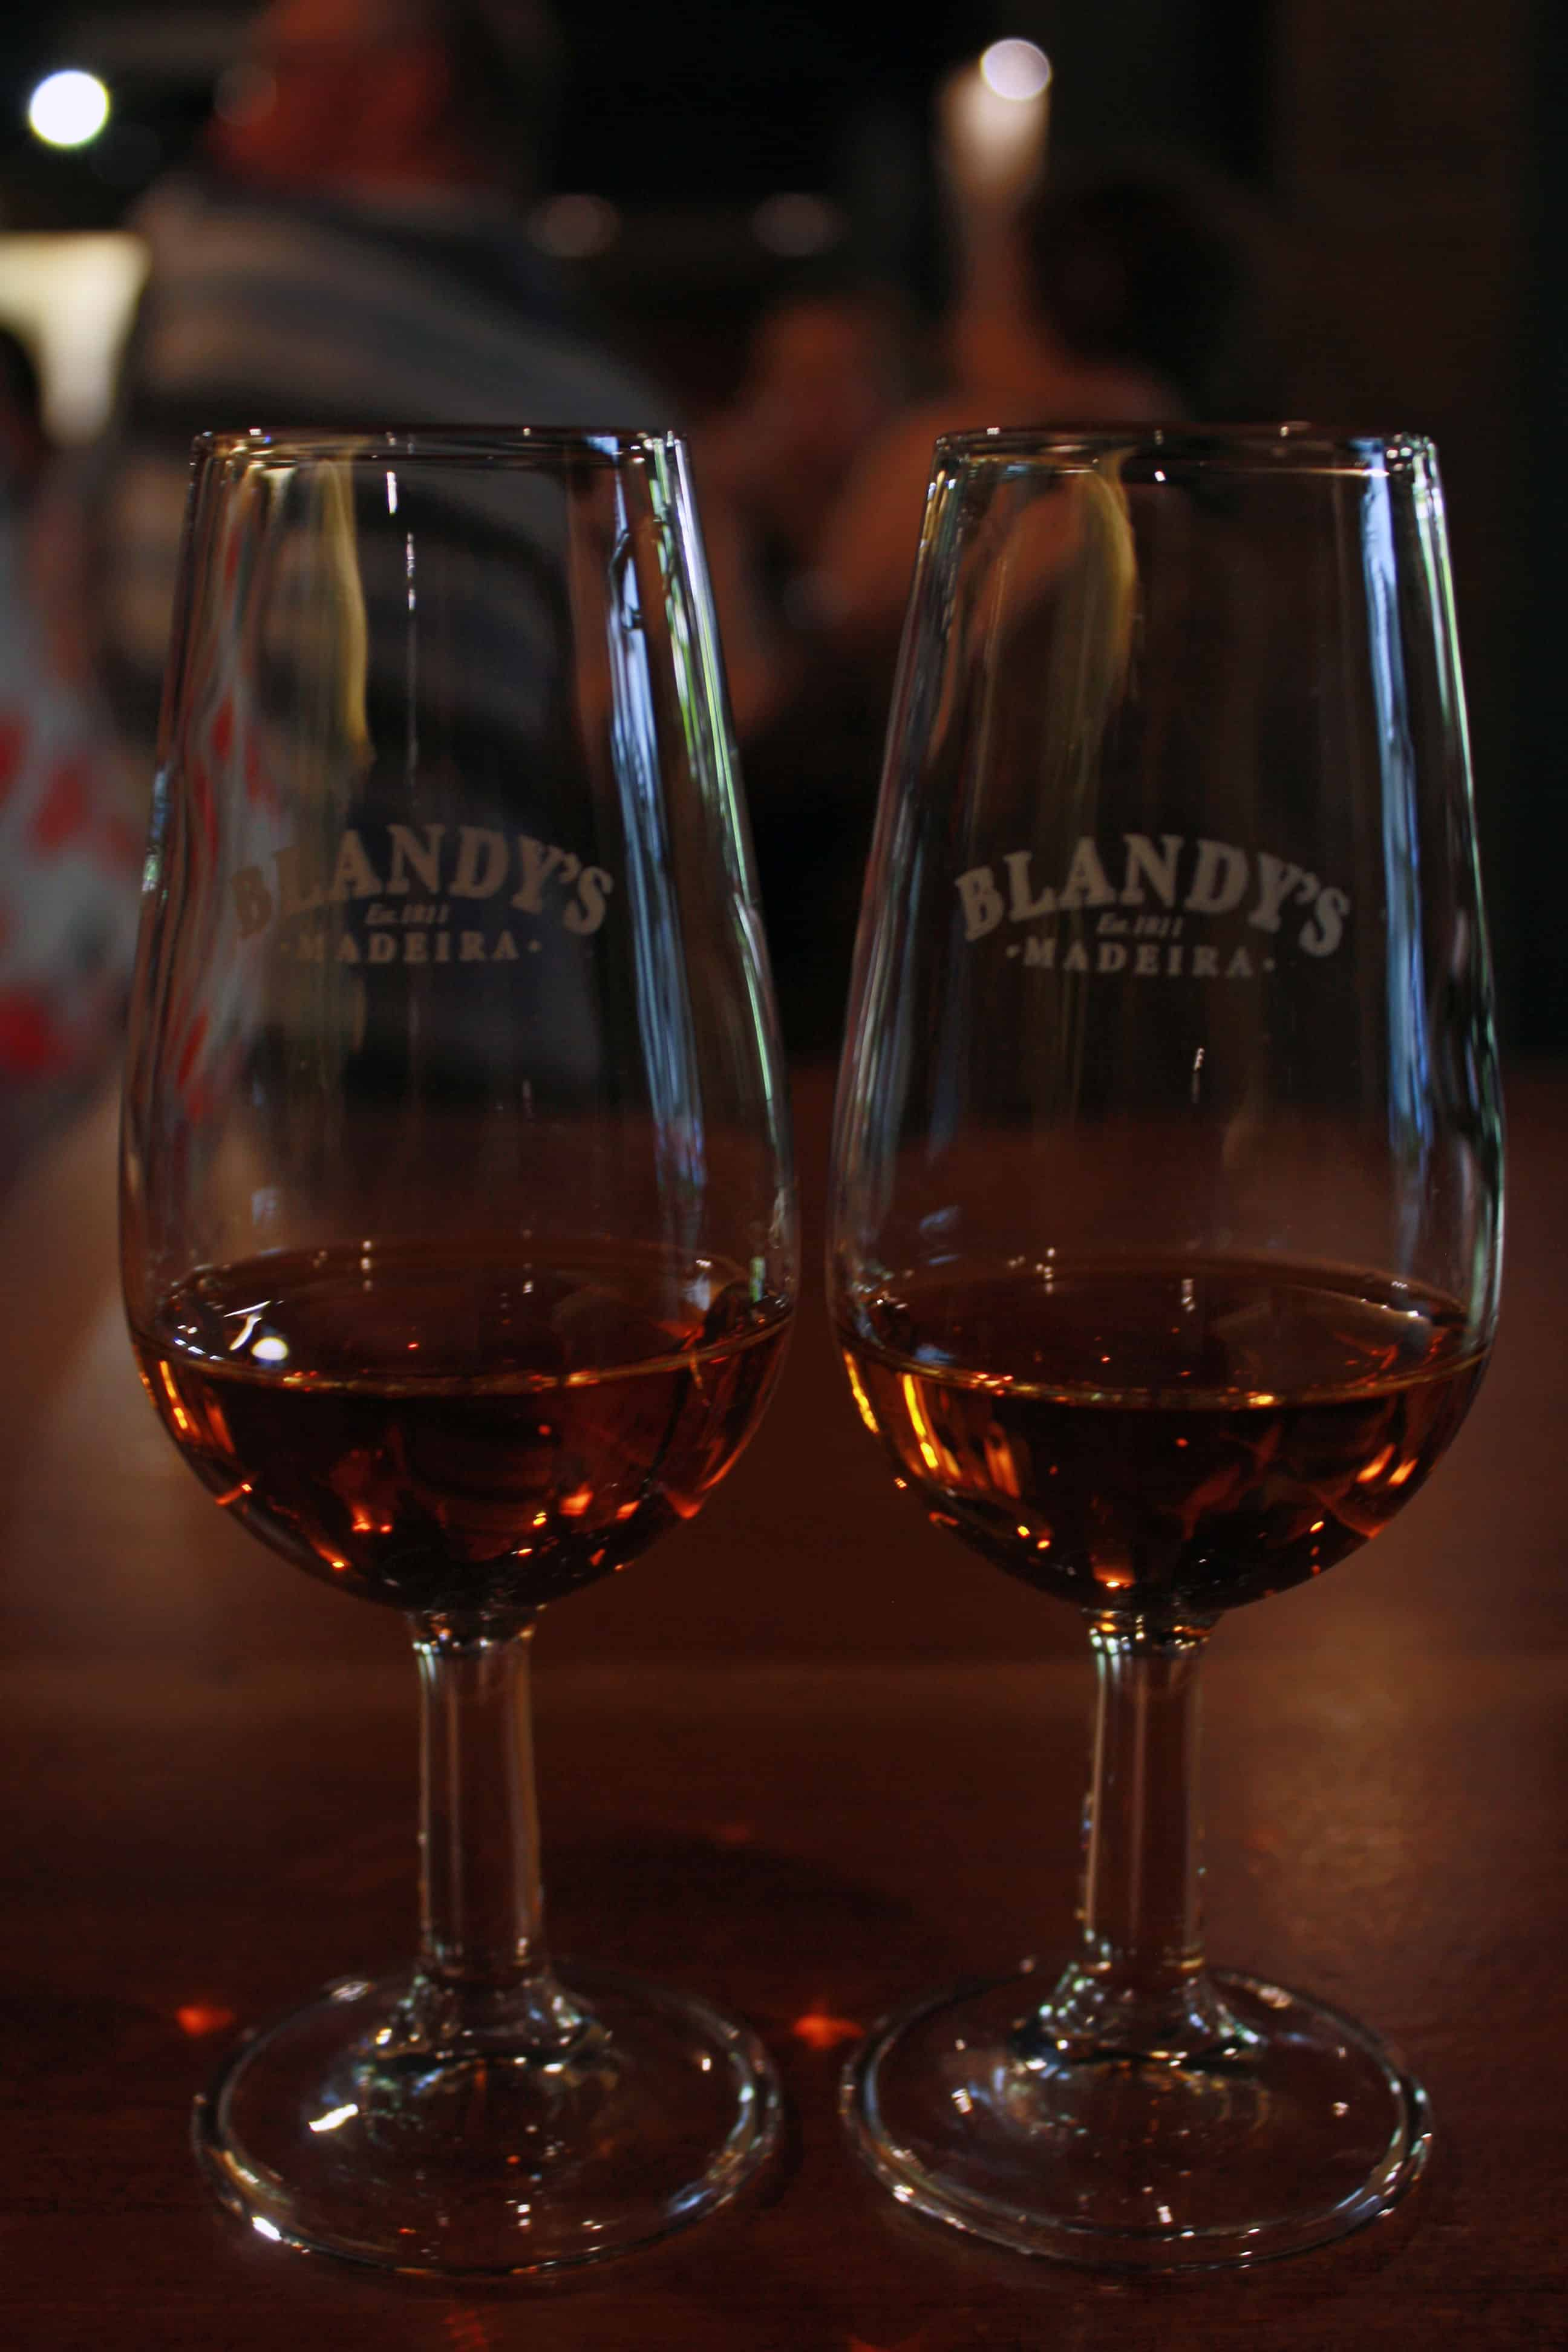 Blandy's Madeira wine samples